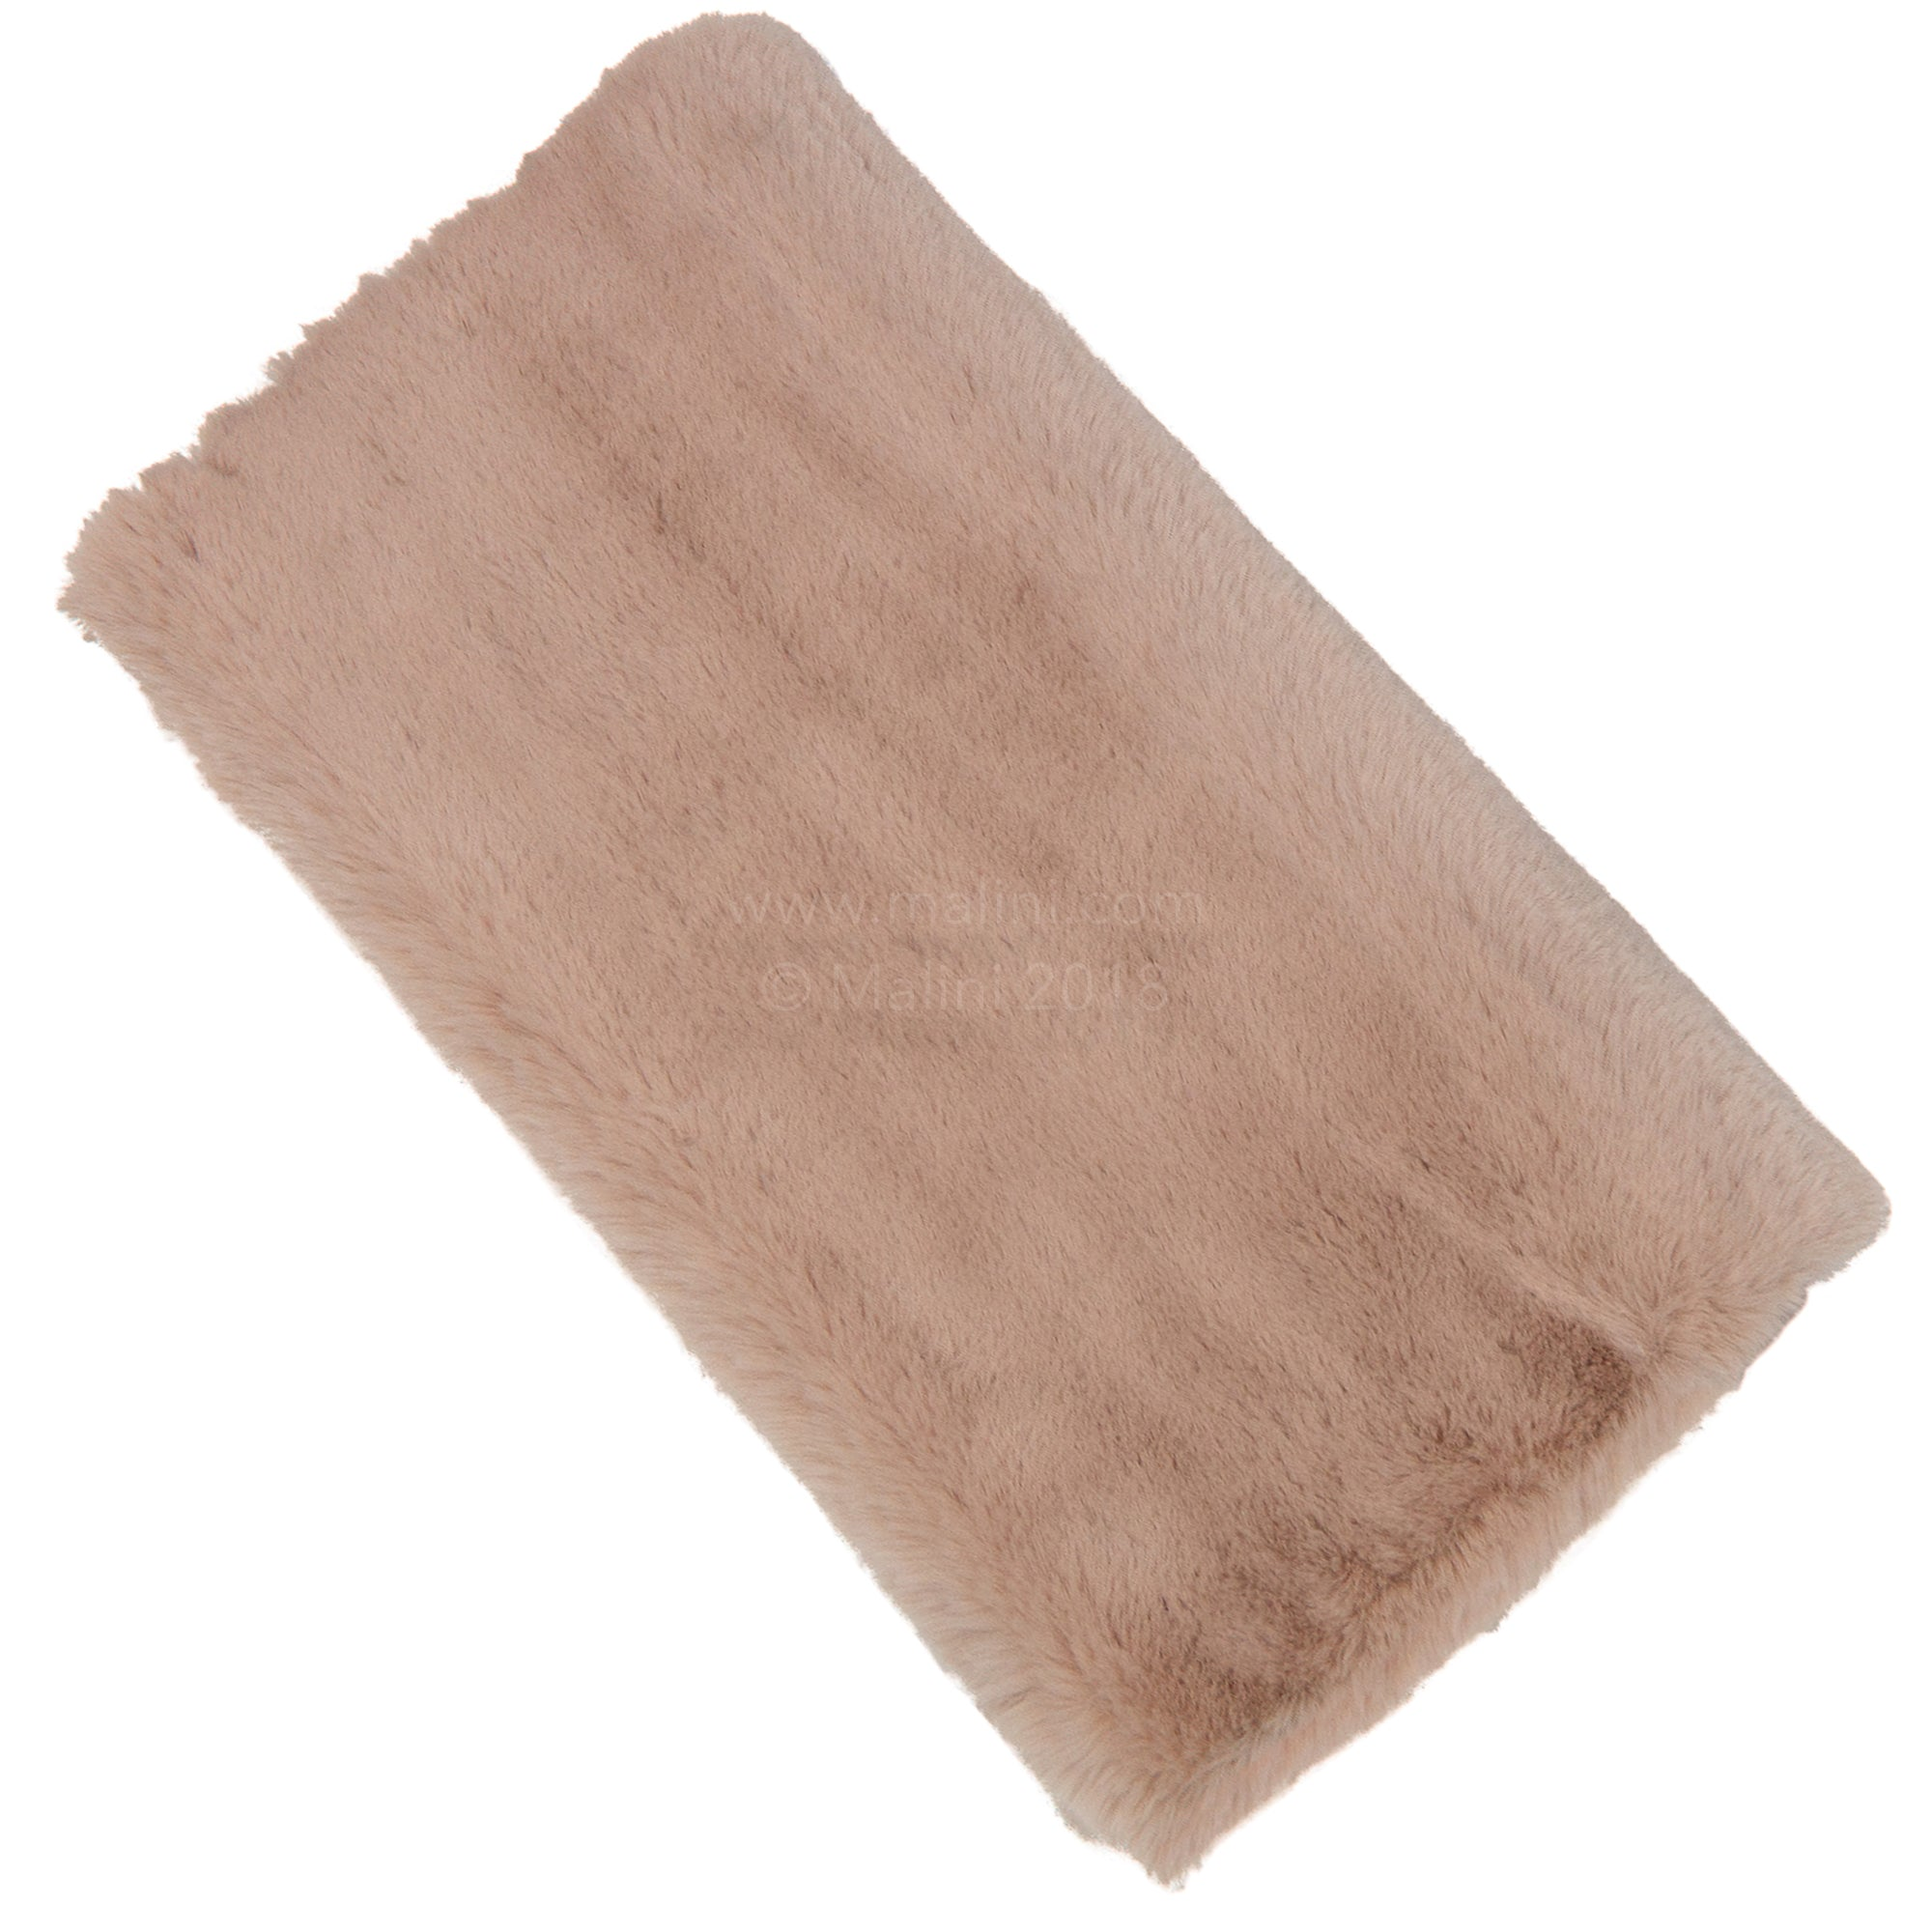 Malini Flopsy Blush Rug-Rug-The Modern Home Shop